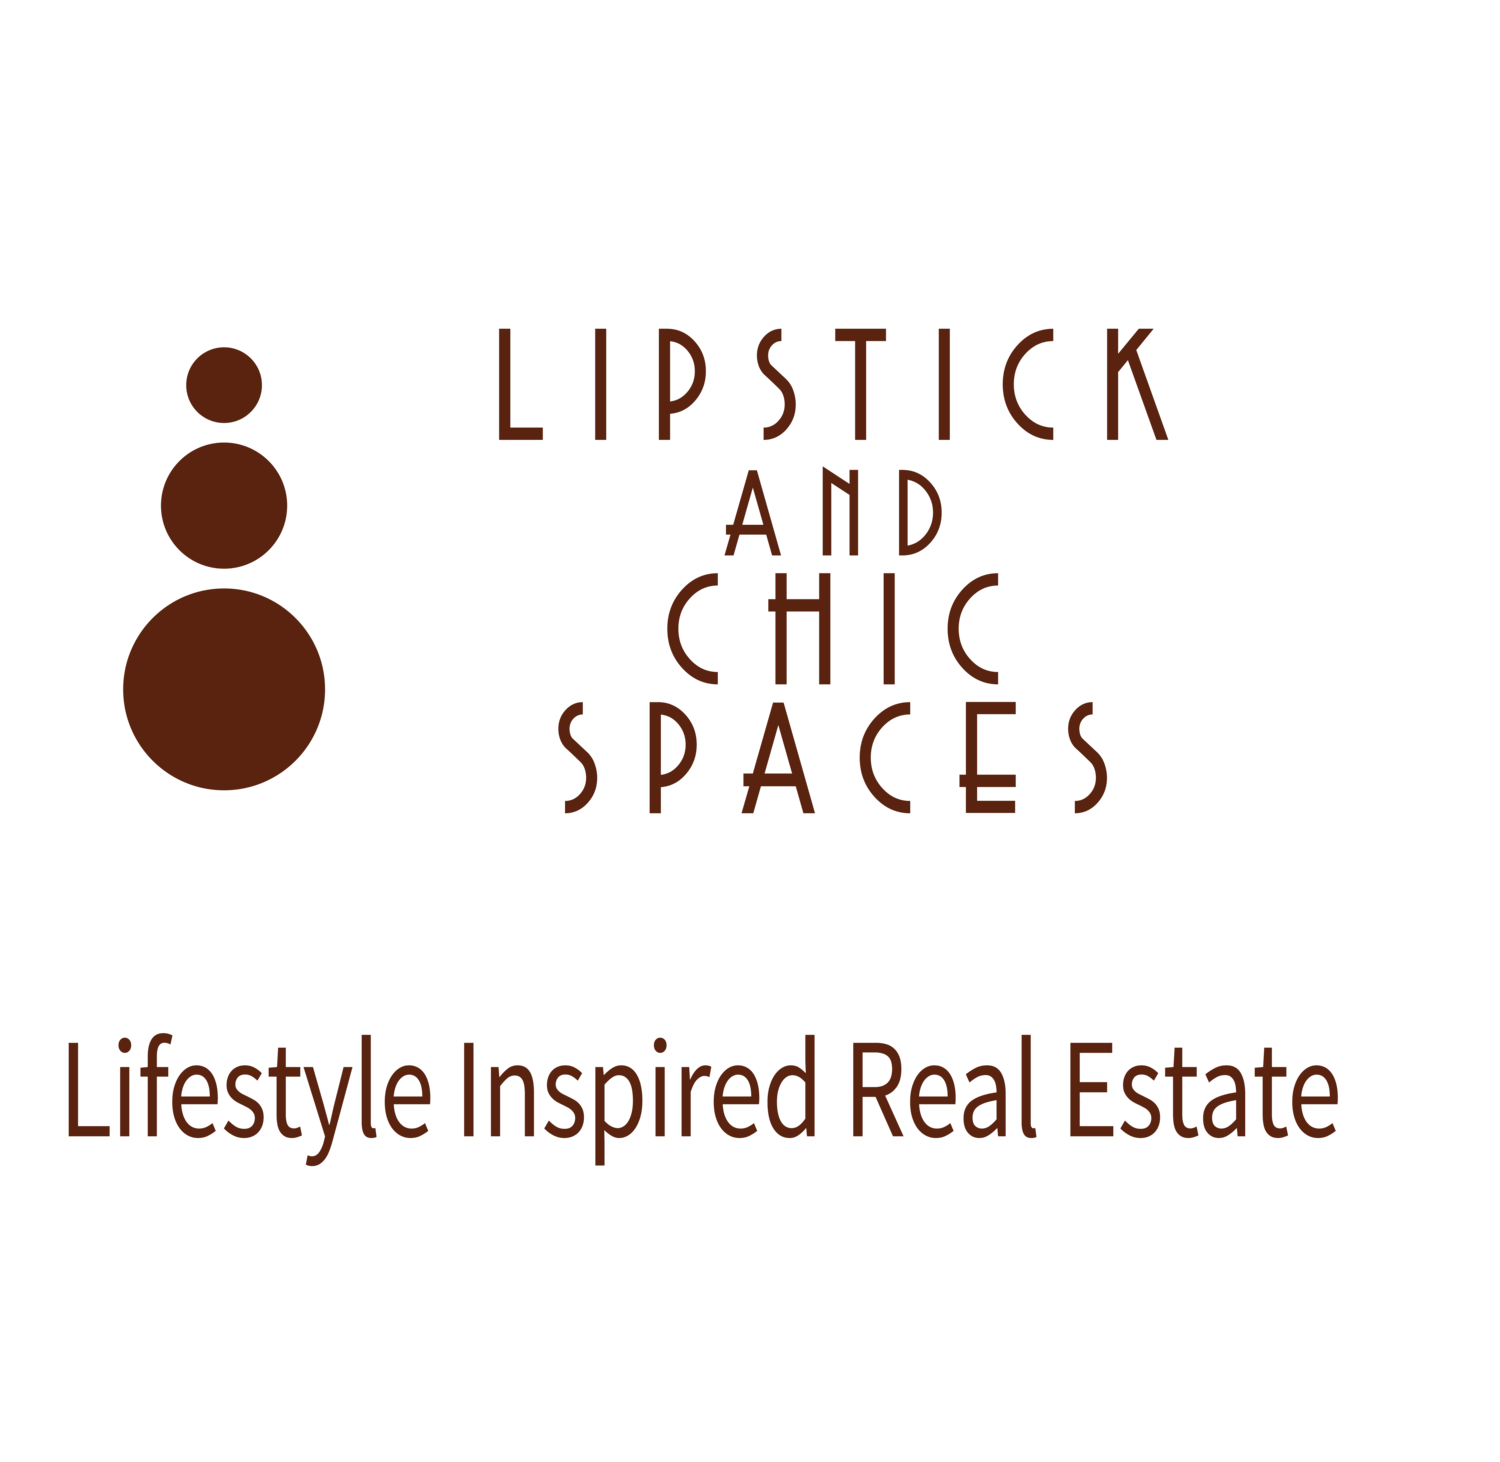 Realtor Associate | Lipstick And Chic Spaces